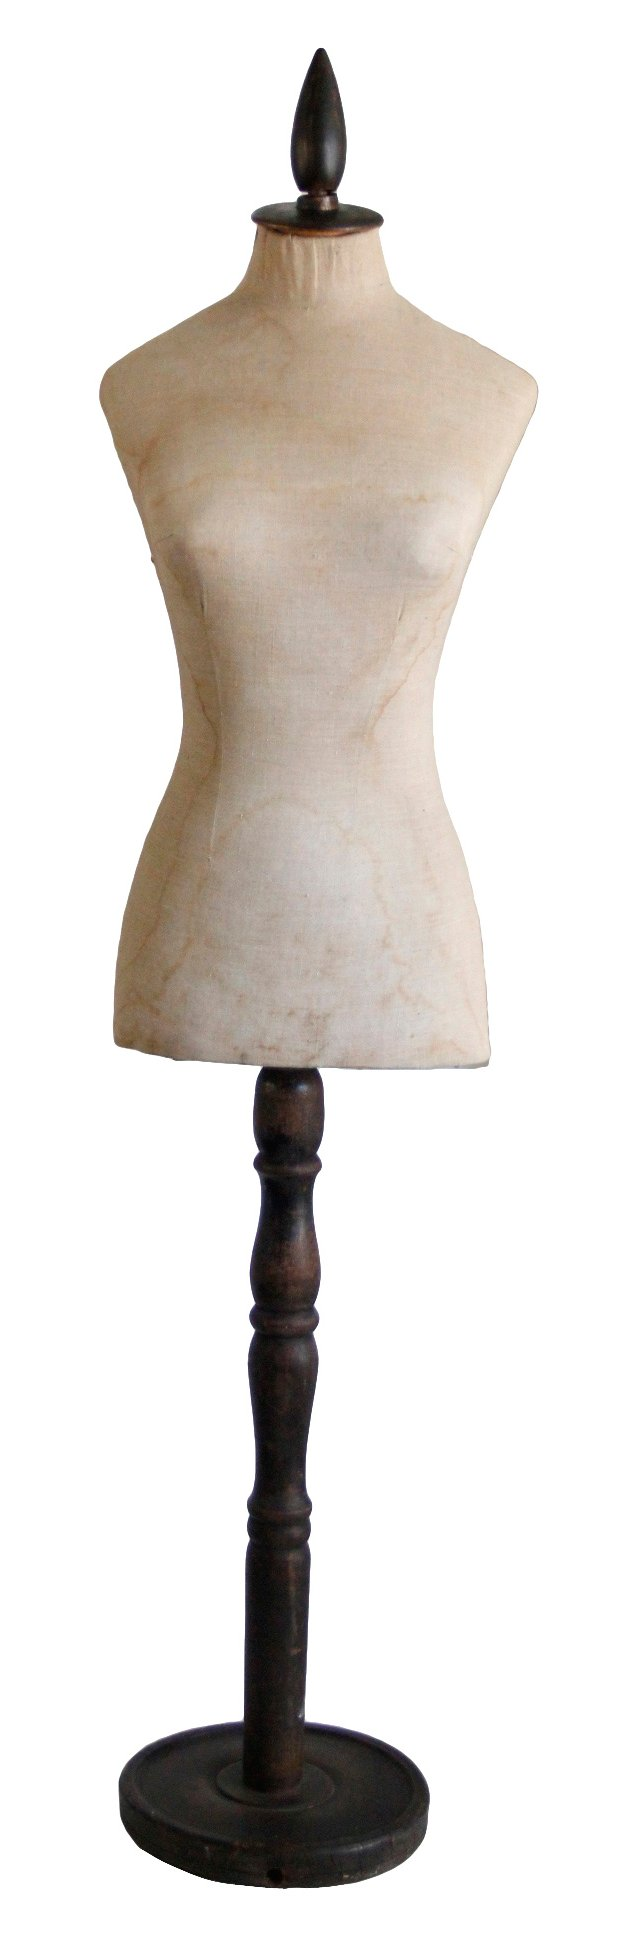 French Linen Dress Form